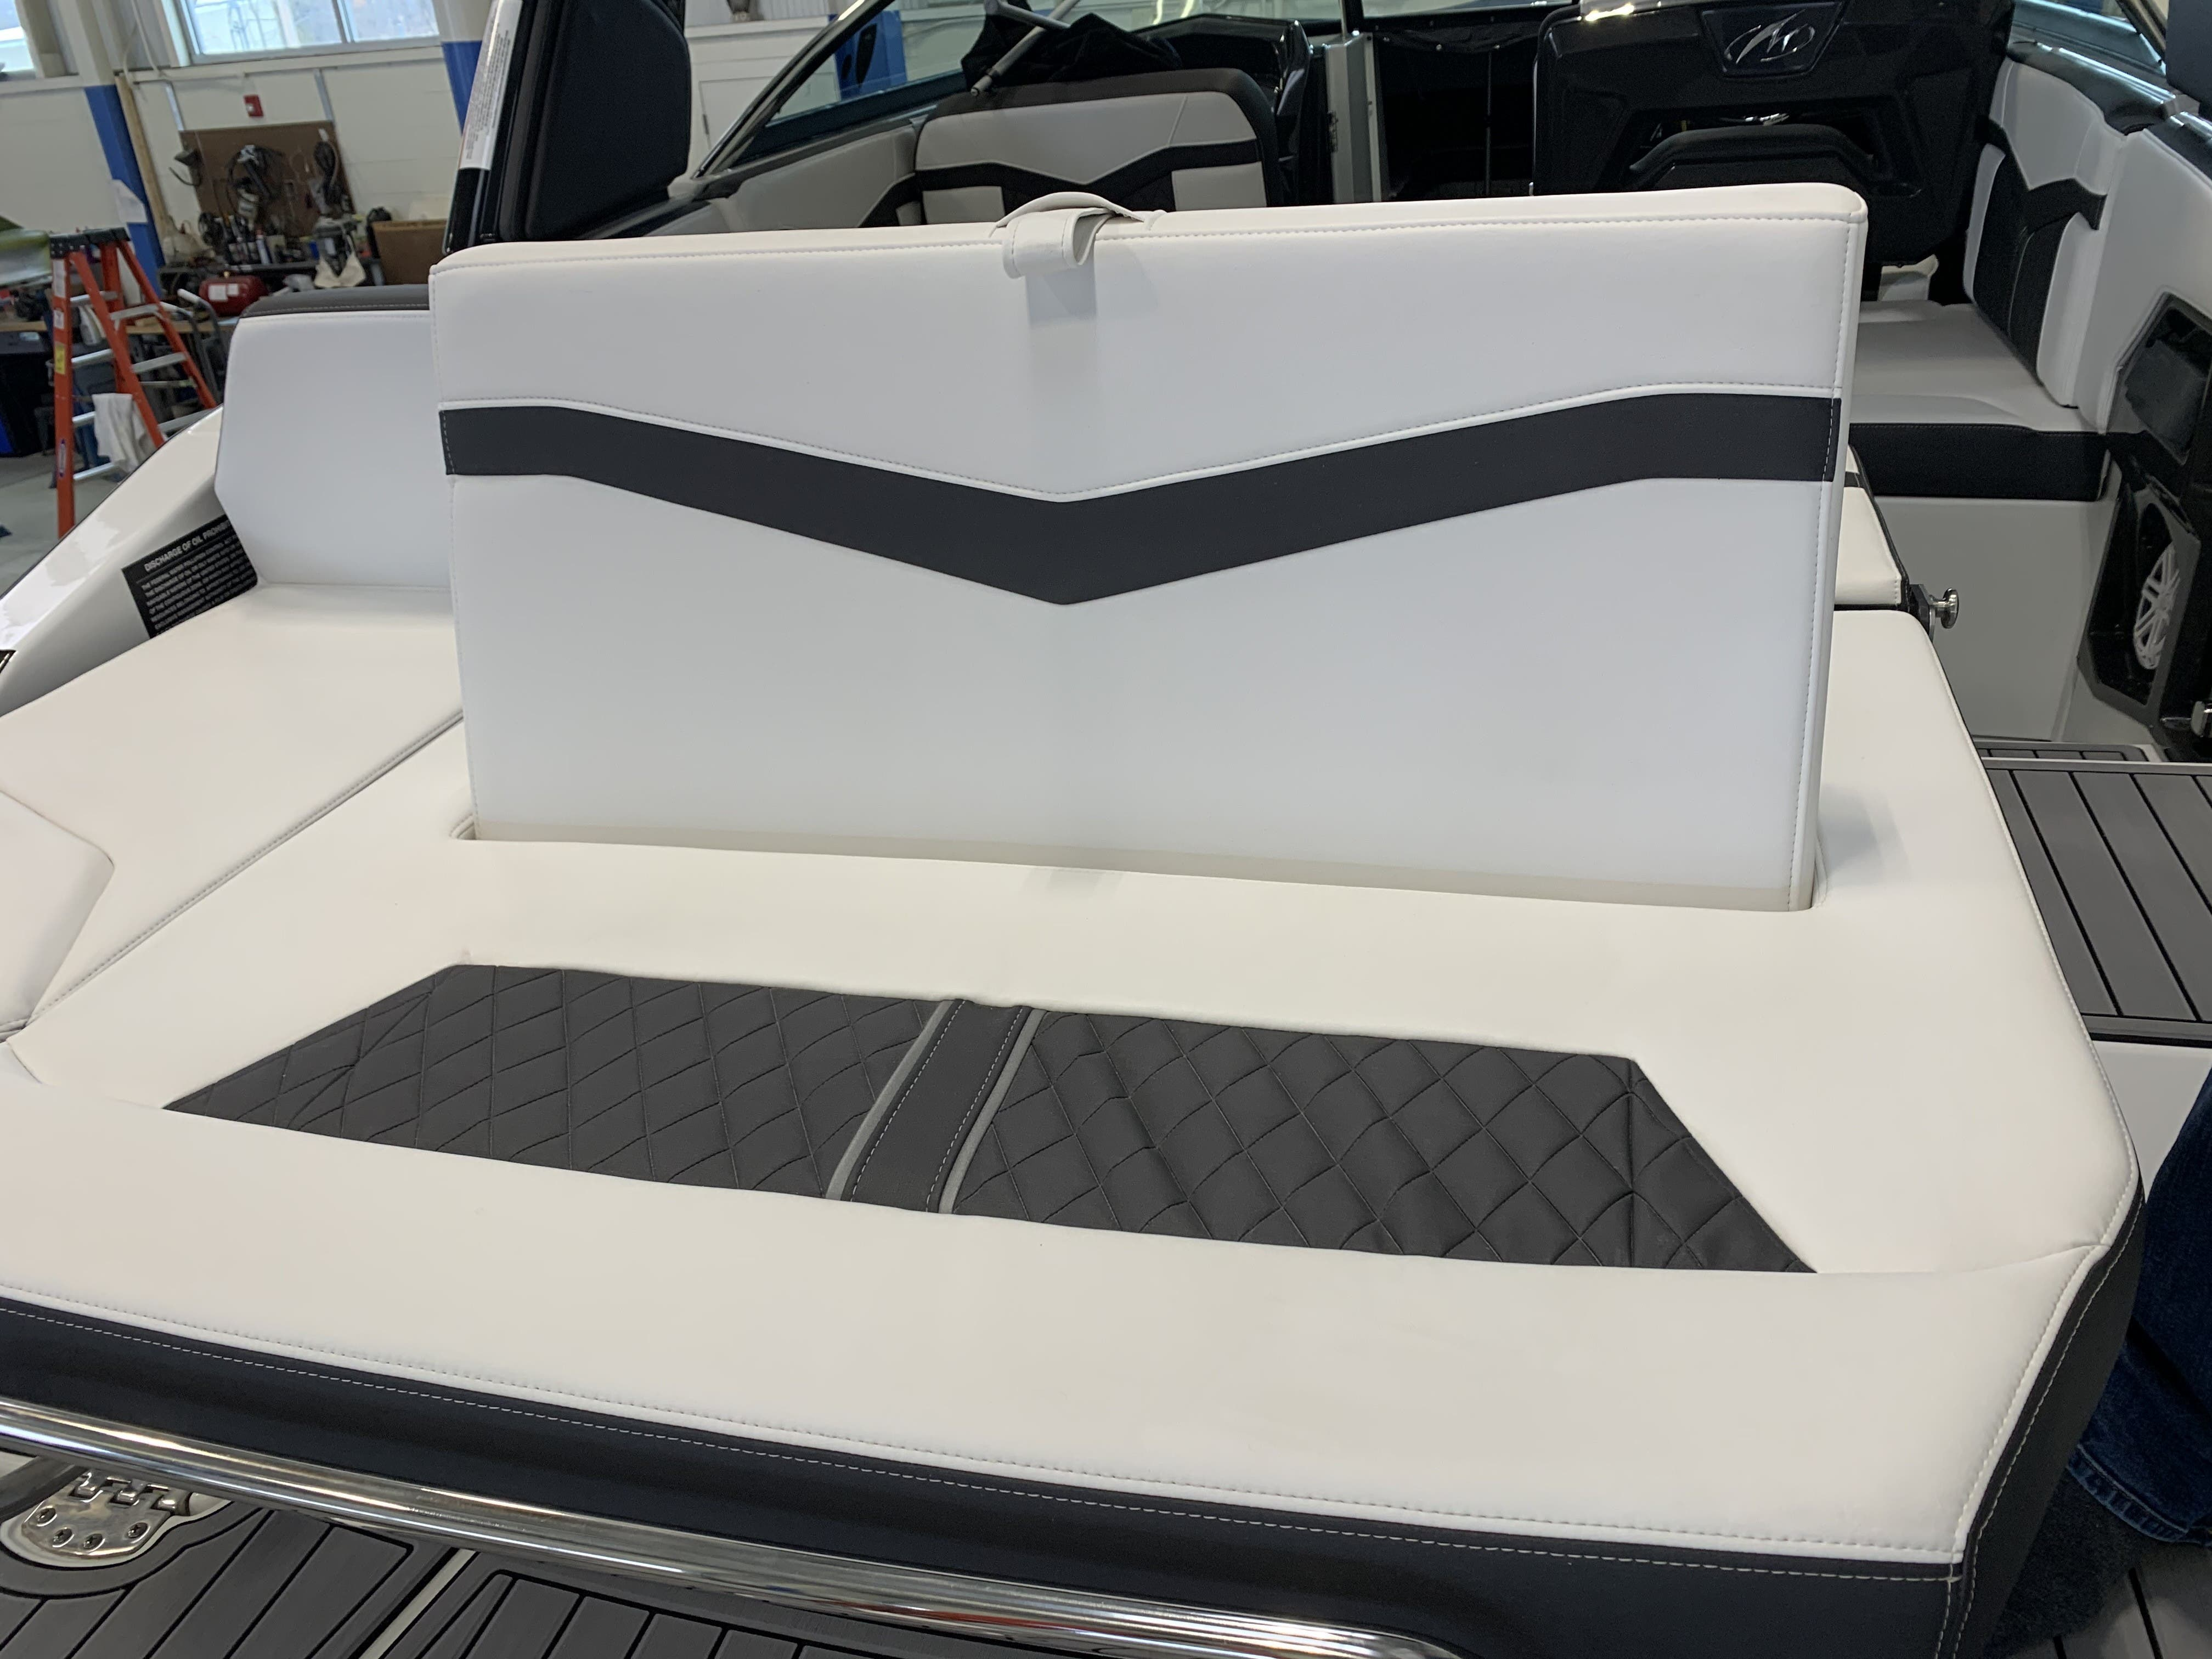 2022 Monterey boat for sale, model of the boat is 278ss & Image # 15 of 18